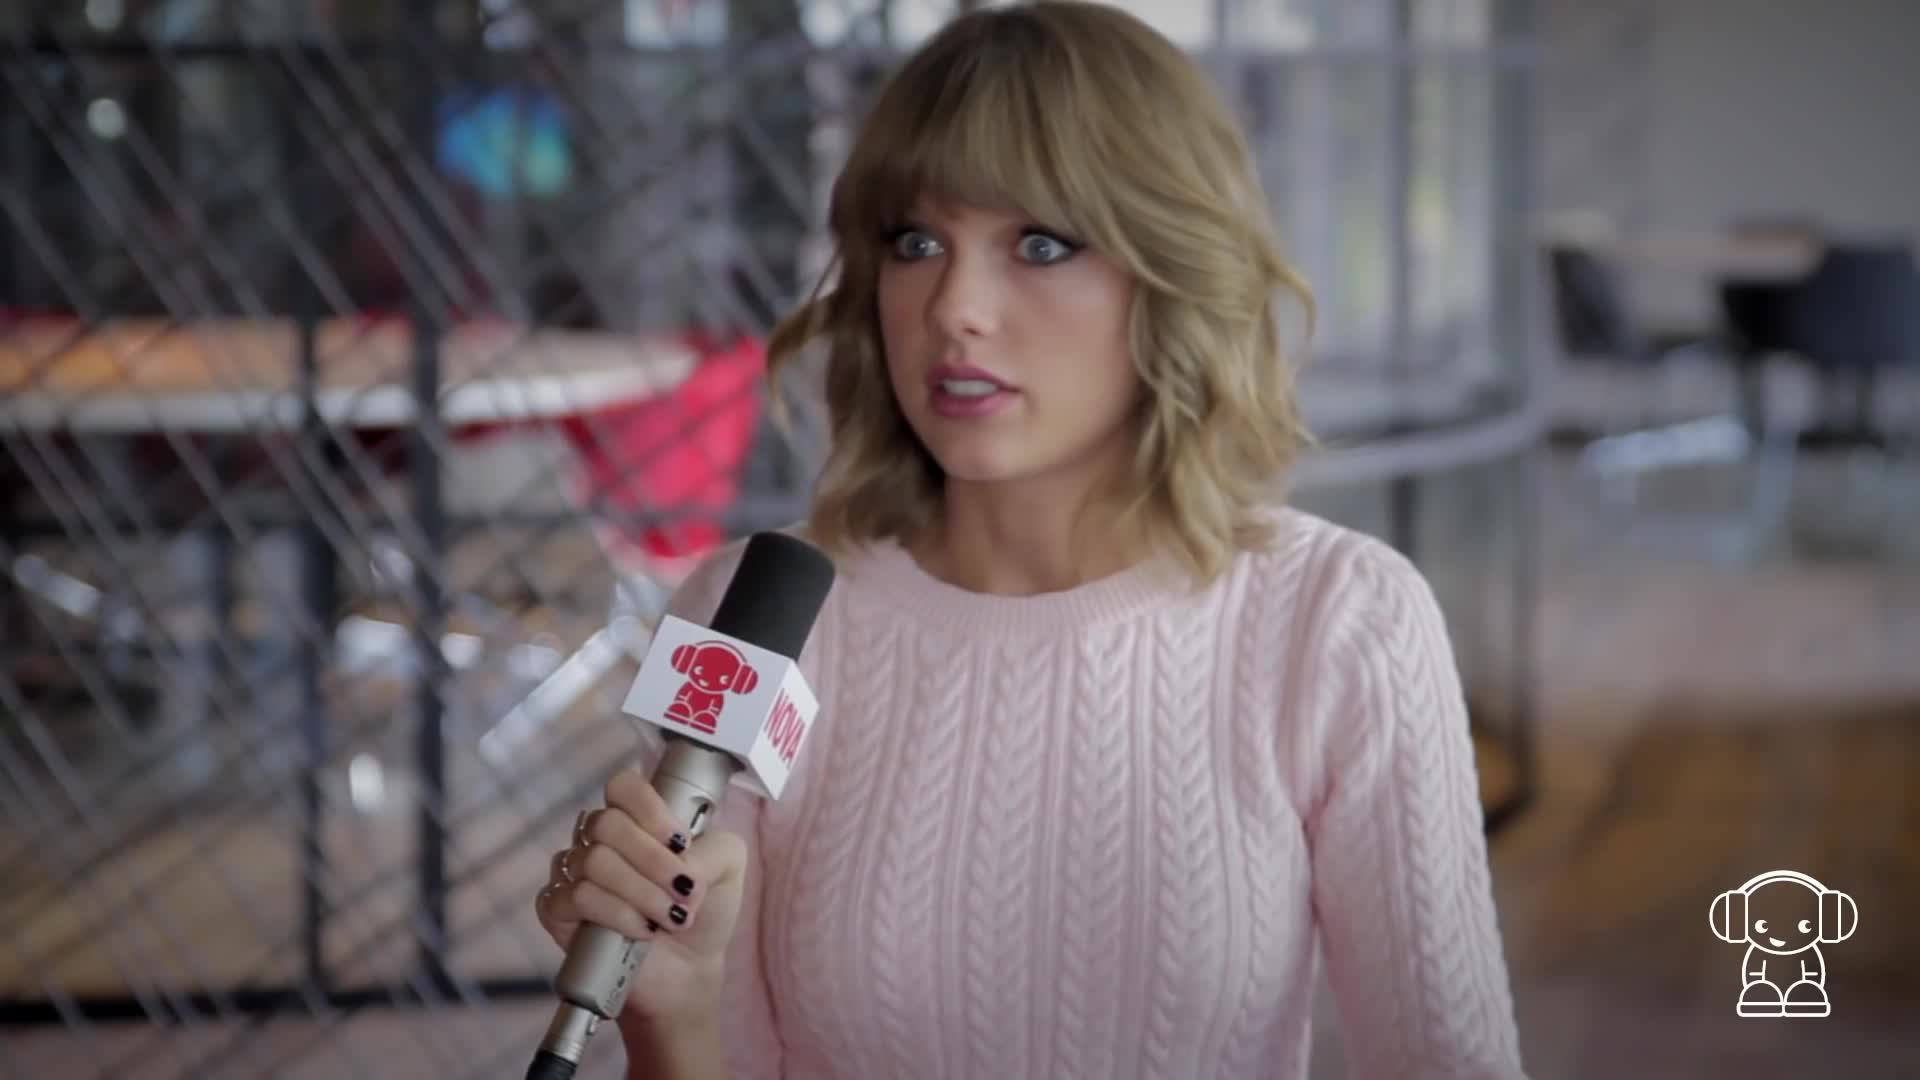 interview, nova fm, quickie, smallzy, surprise, surprised, swift, taylor, taylor swift, 😯, Taylor Swift Surprised GIFs